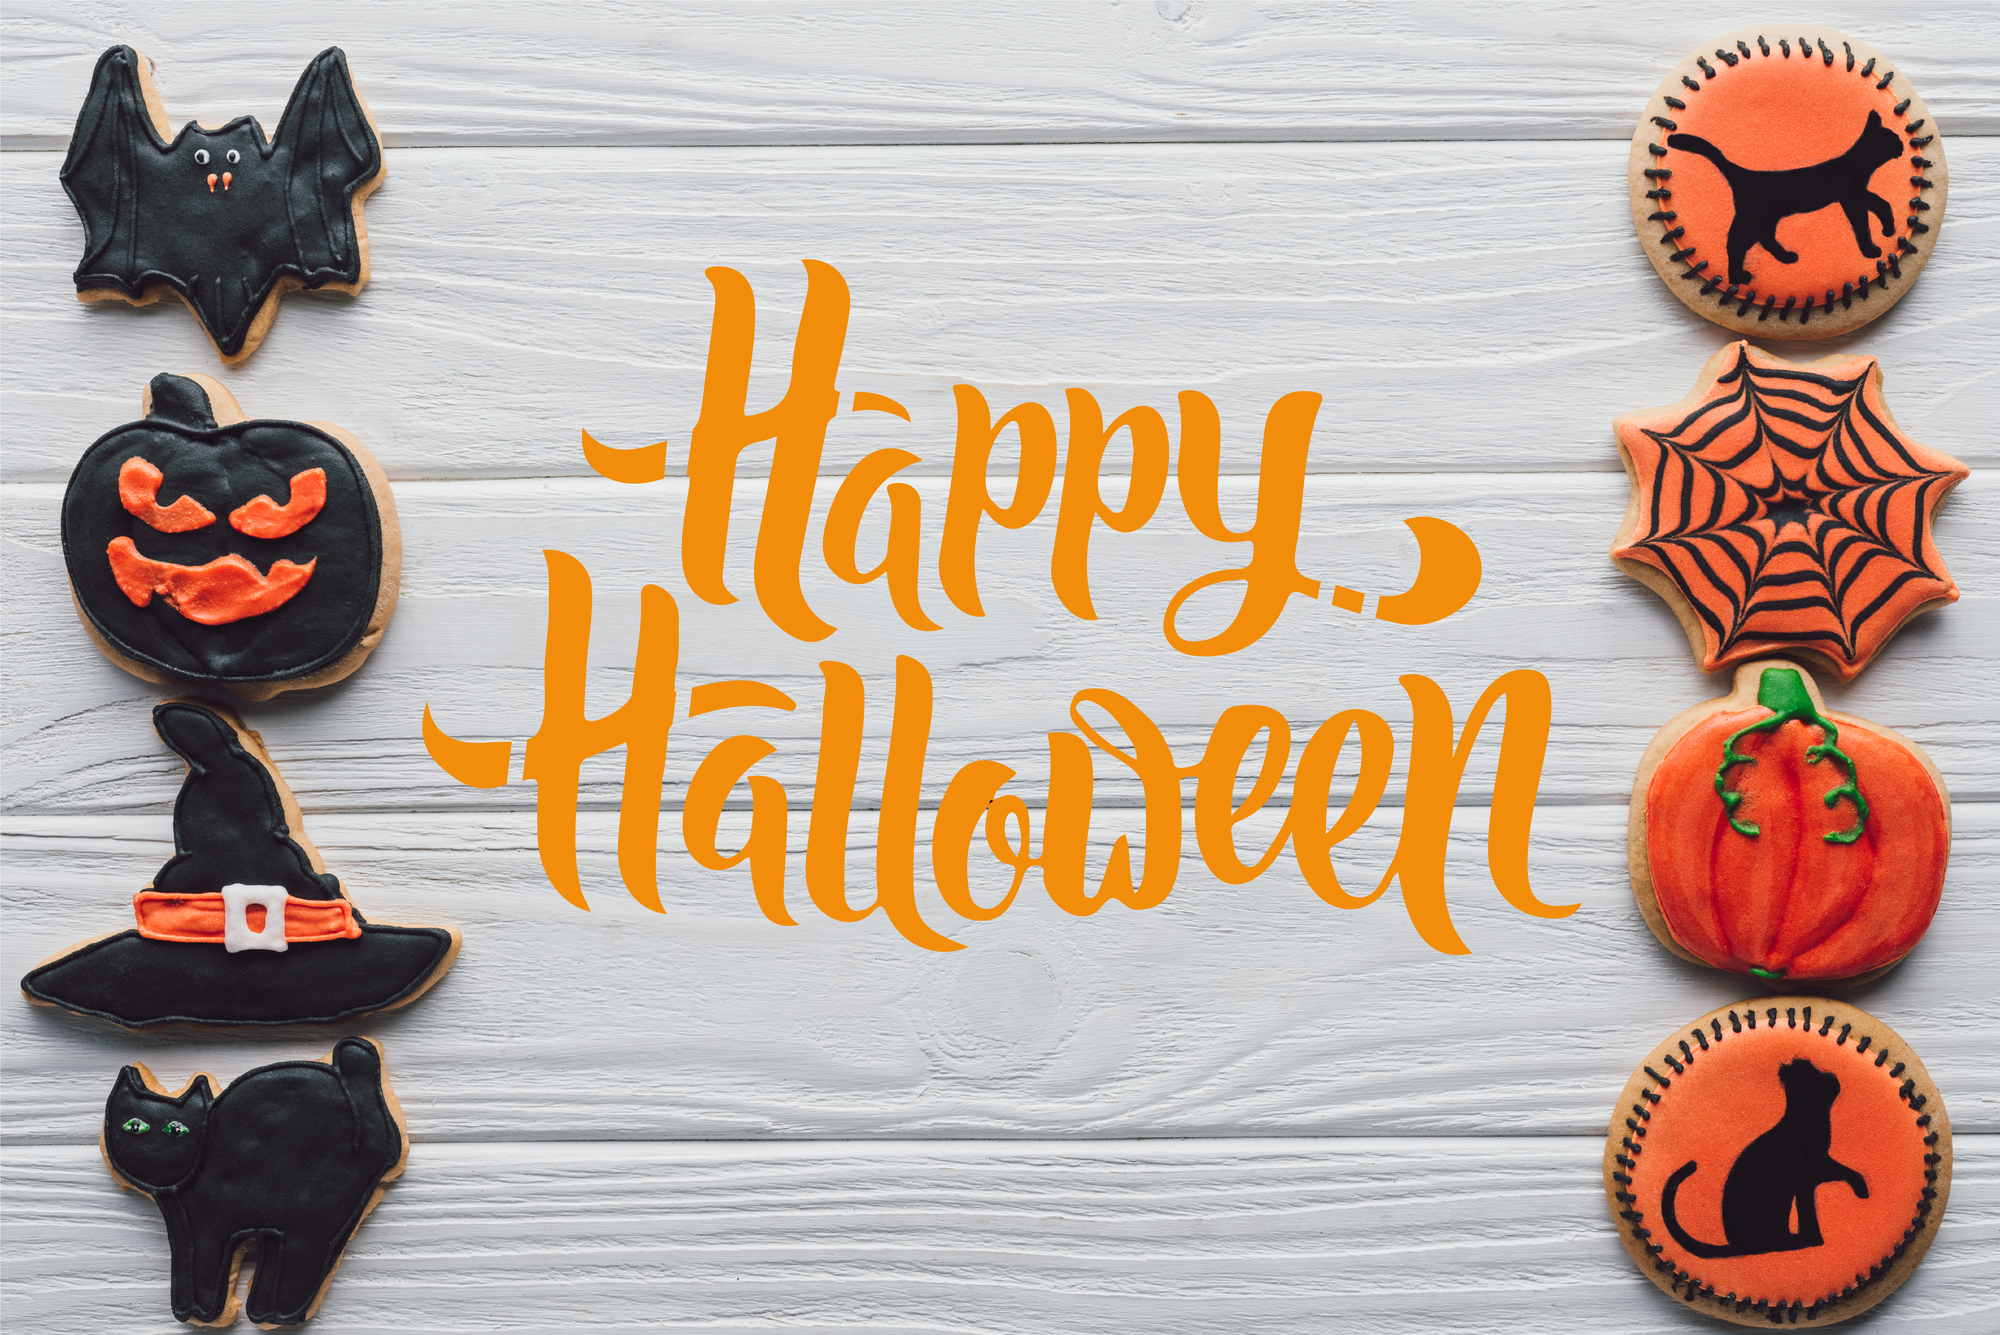 text says Happy Halloween and pictures are cookies on a background